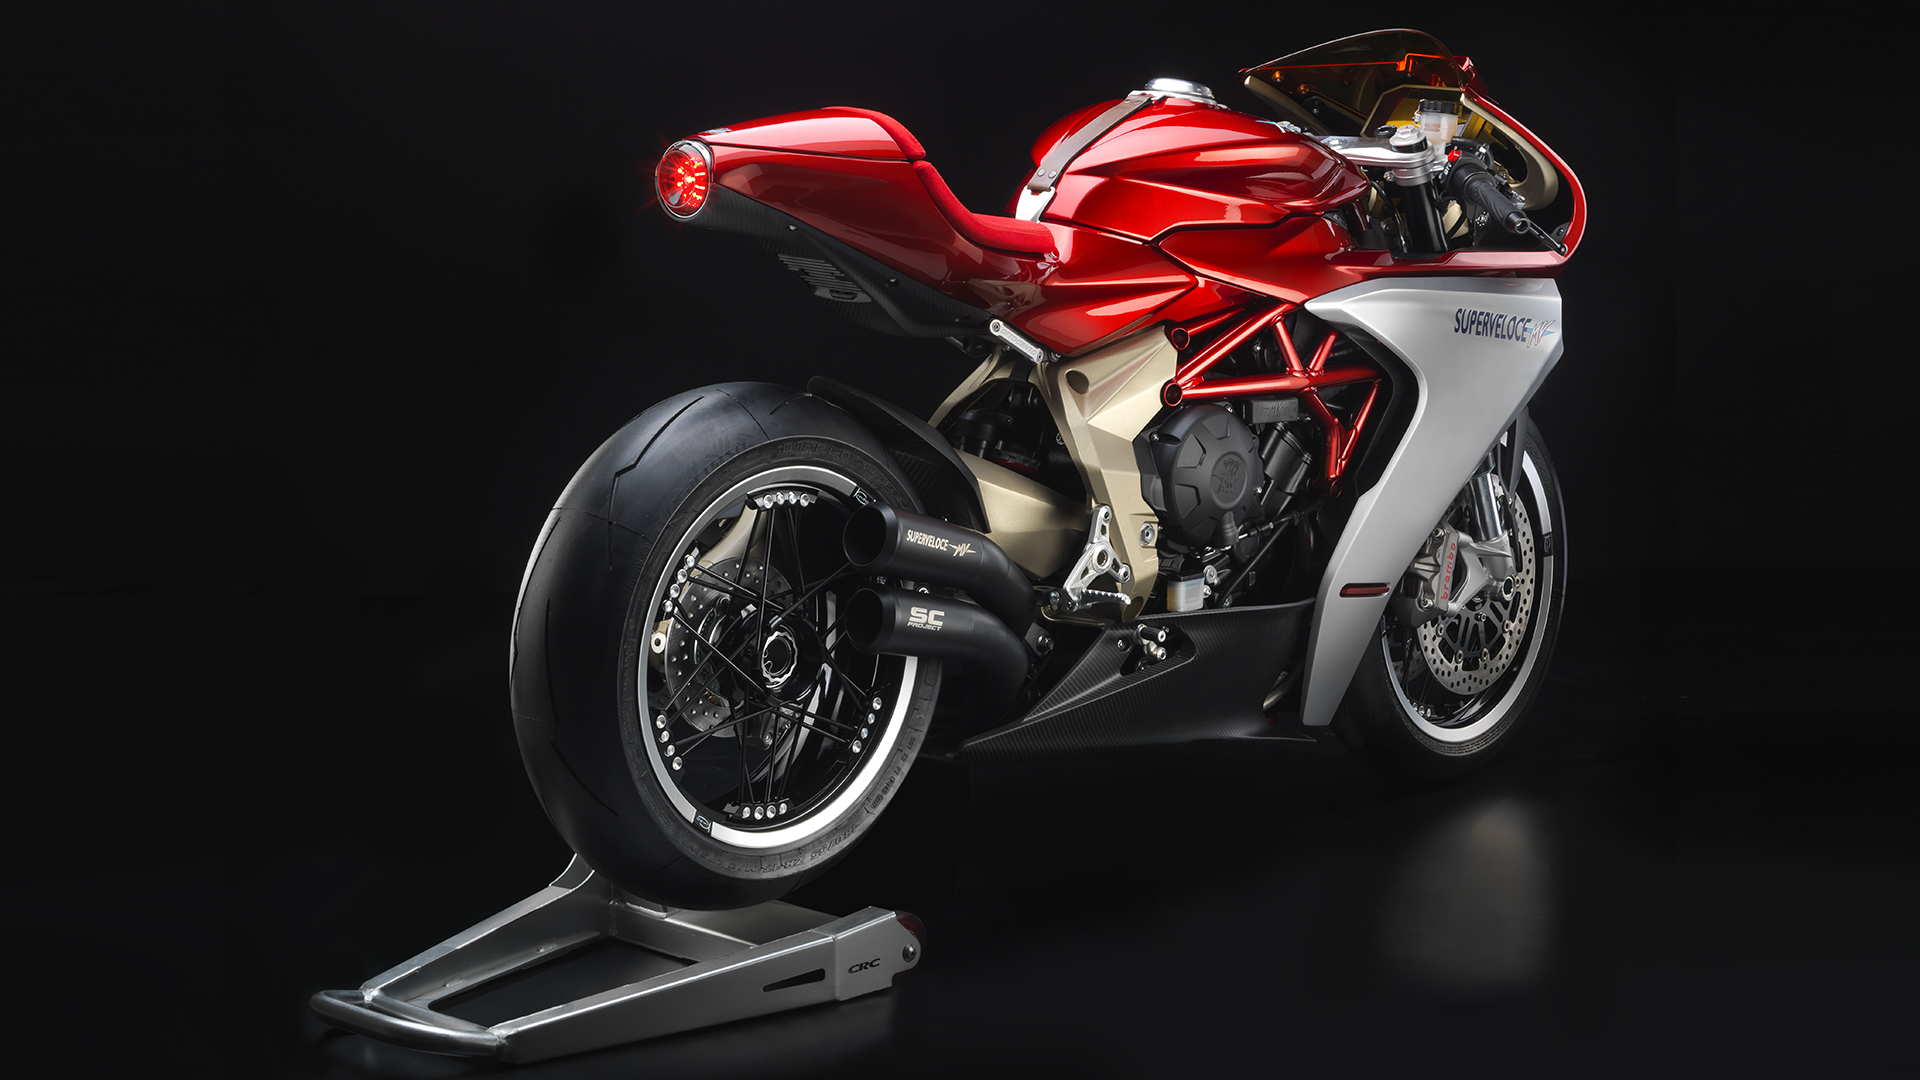 mv agusta shows 2019 motorcycle range at eicma paul tan image 889264. Black Bedroom Furniture Sets. Home Design Ideas